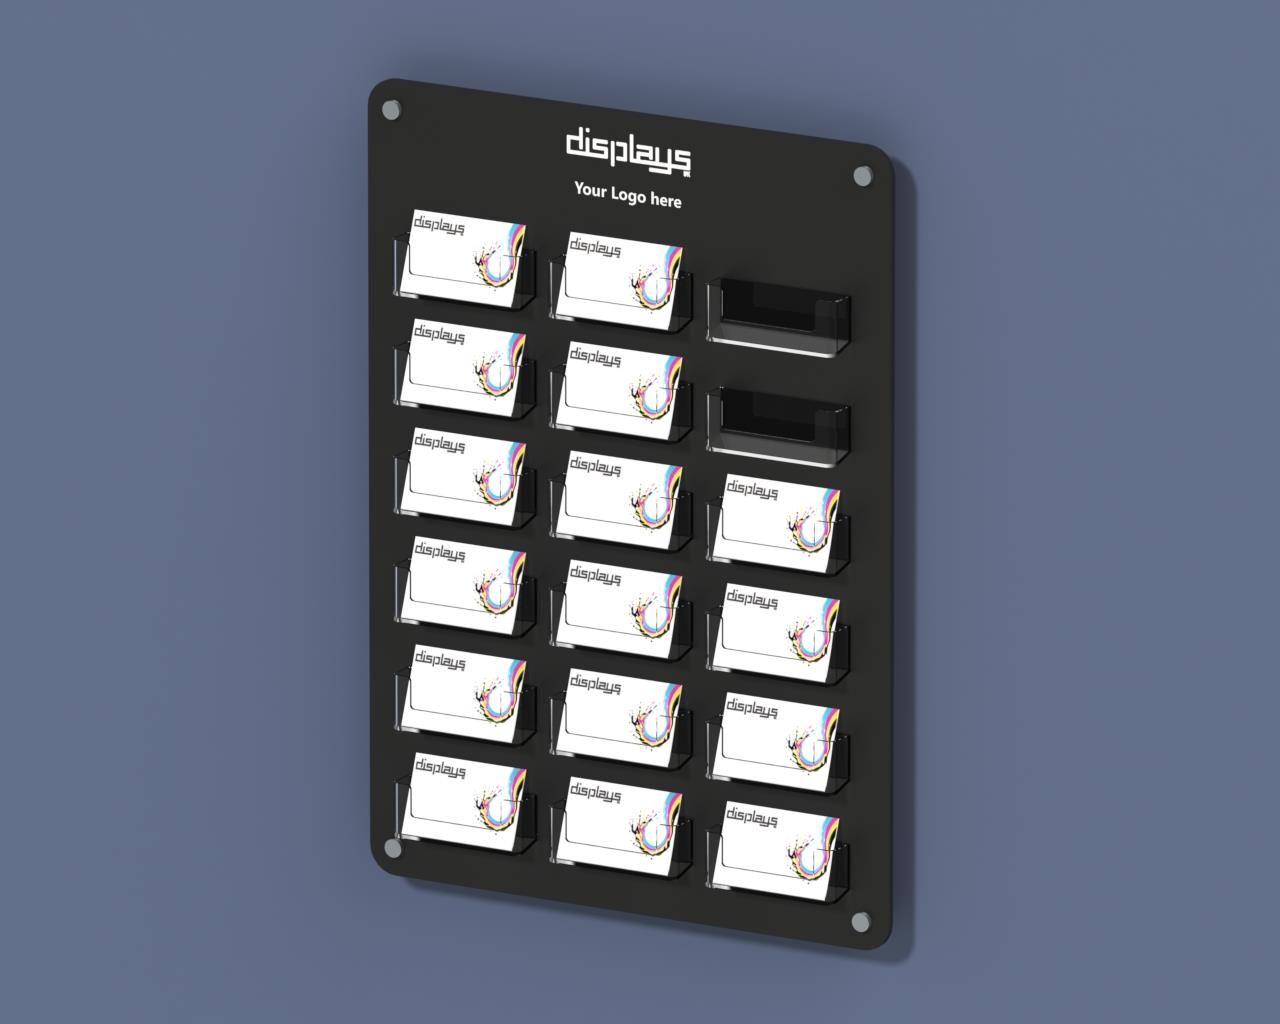 Printed Wall Mounted Business Card Holder - 18 Pockets on Board